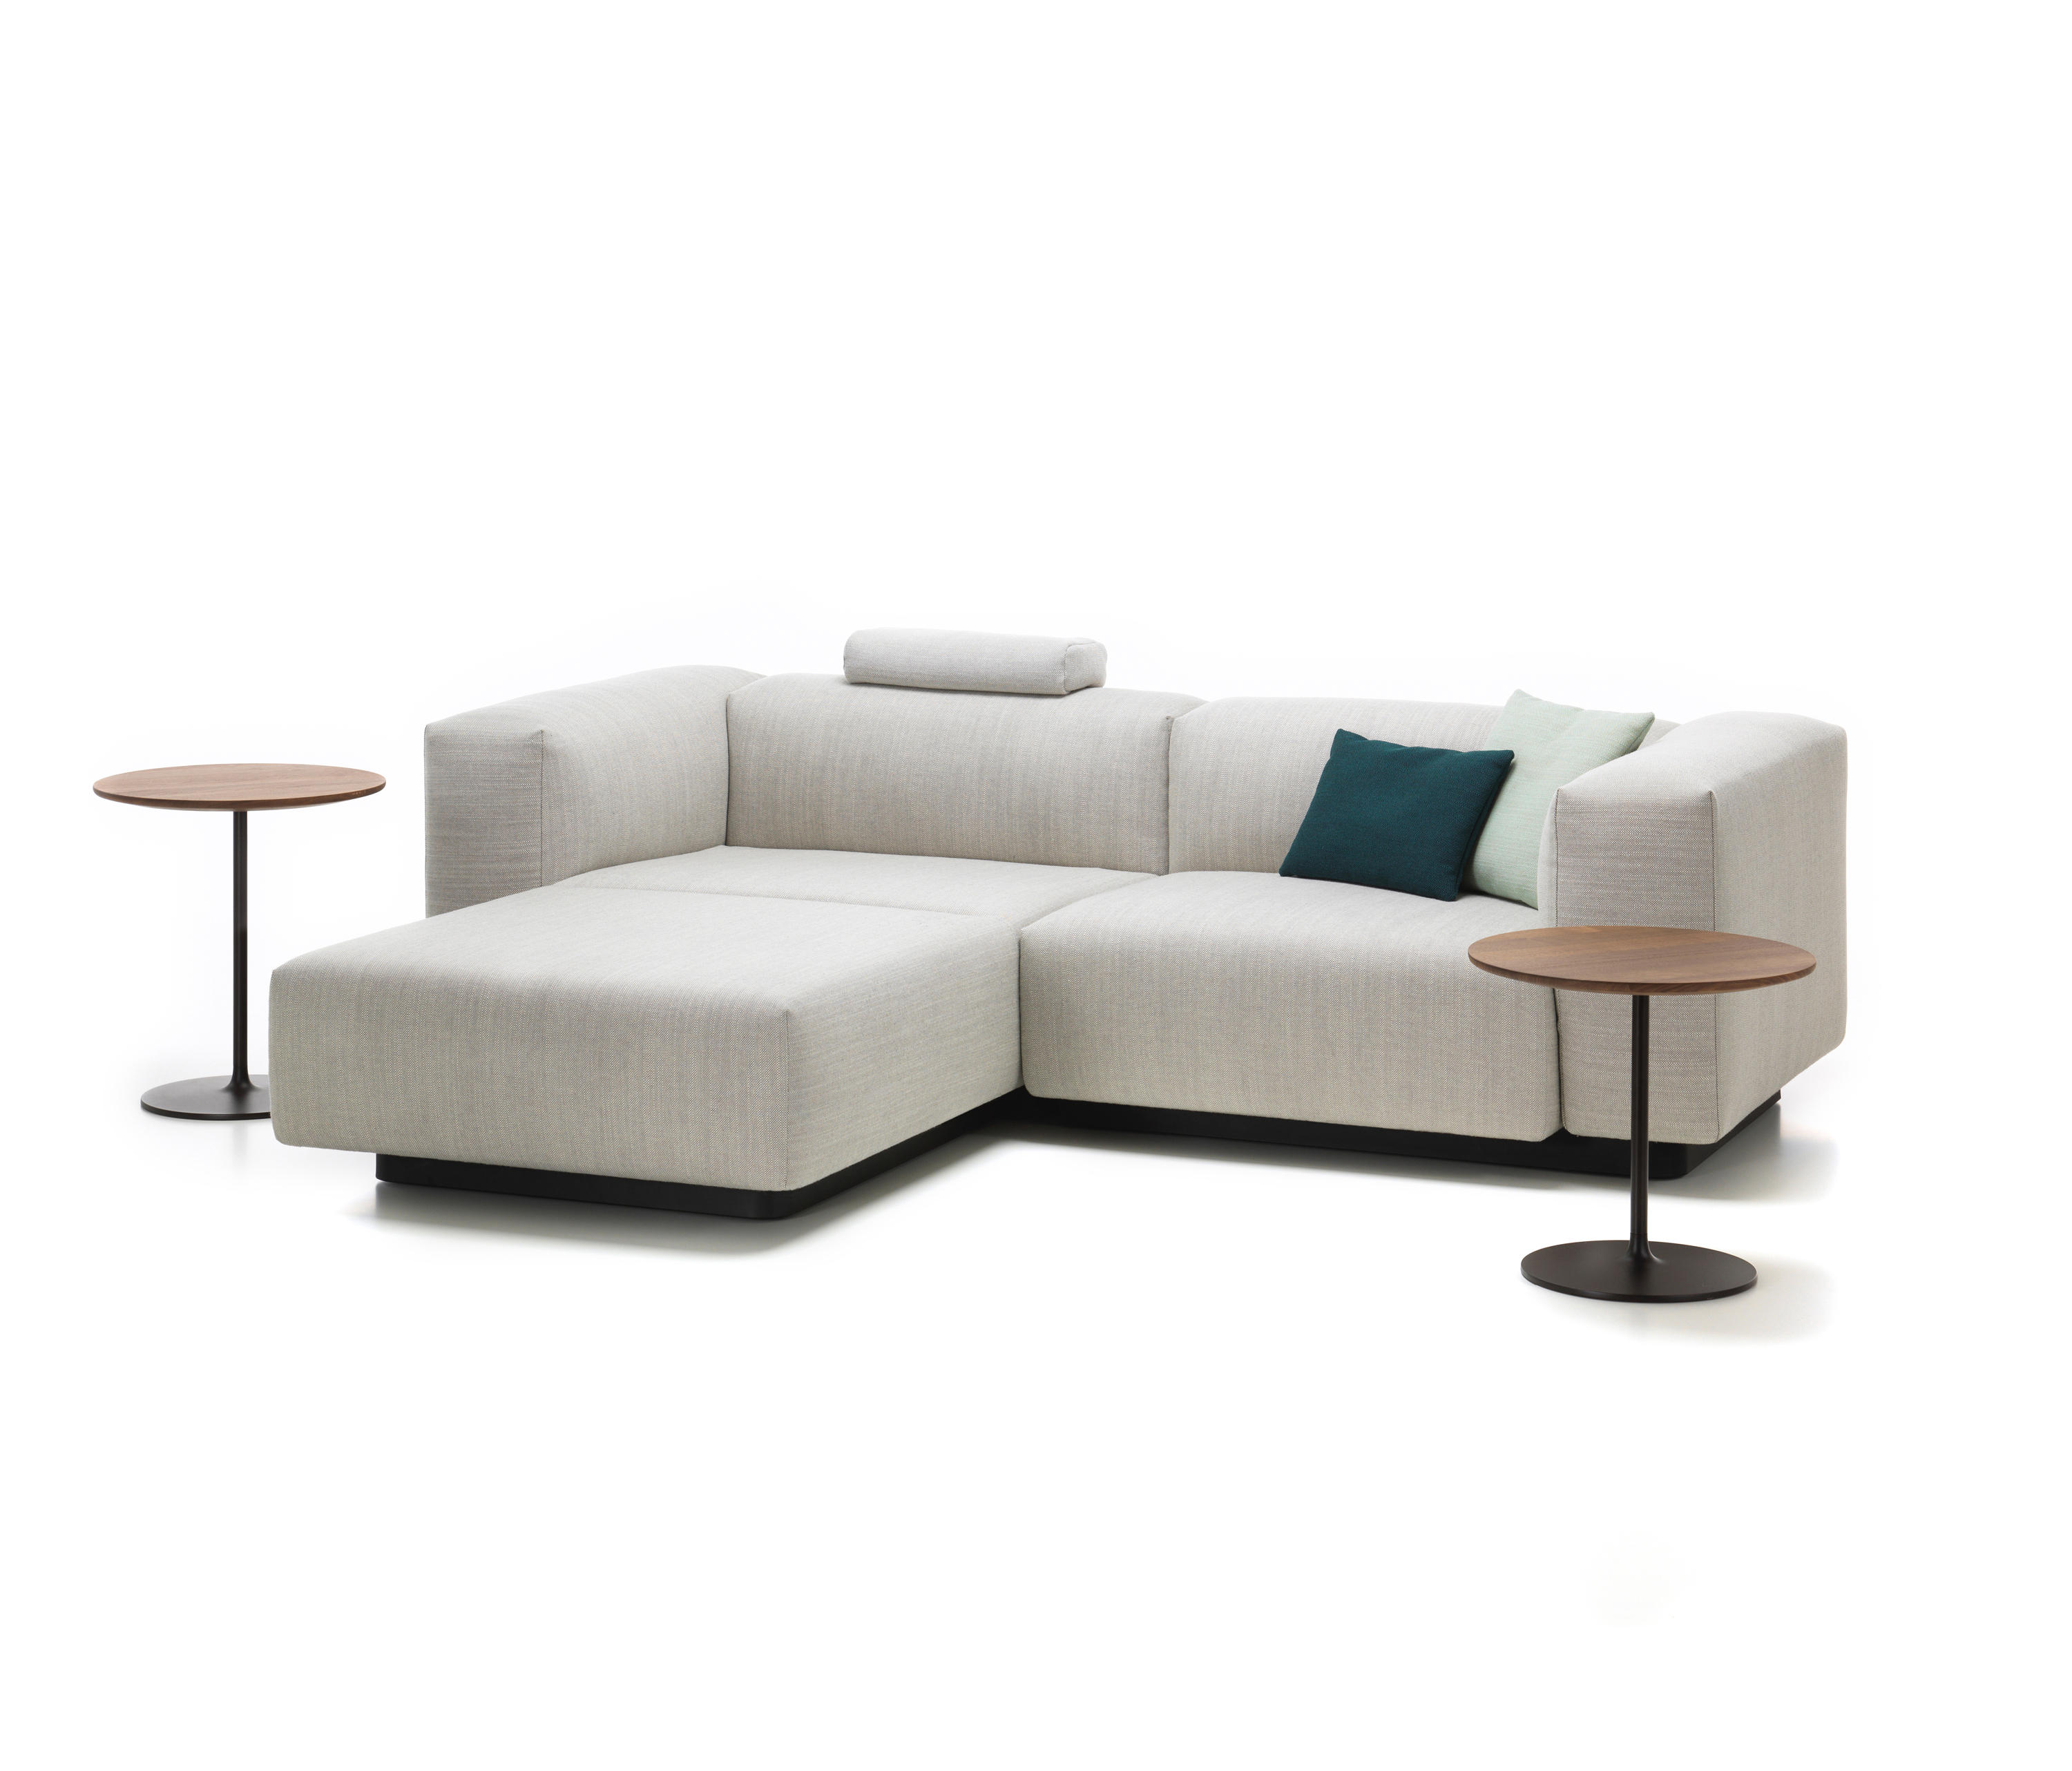 2 seater chaise sofa bed combination leather and fabric sofas with nockeby